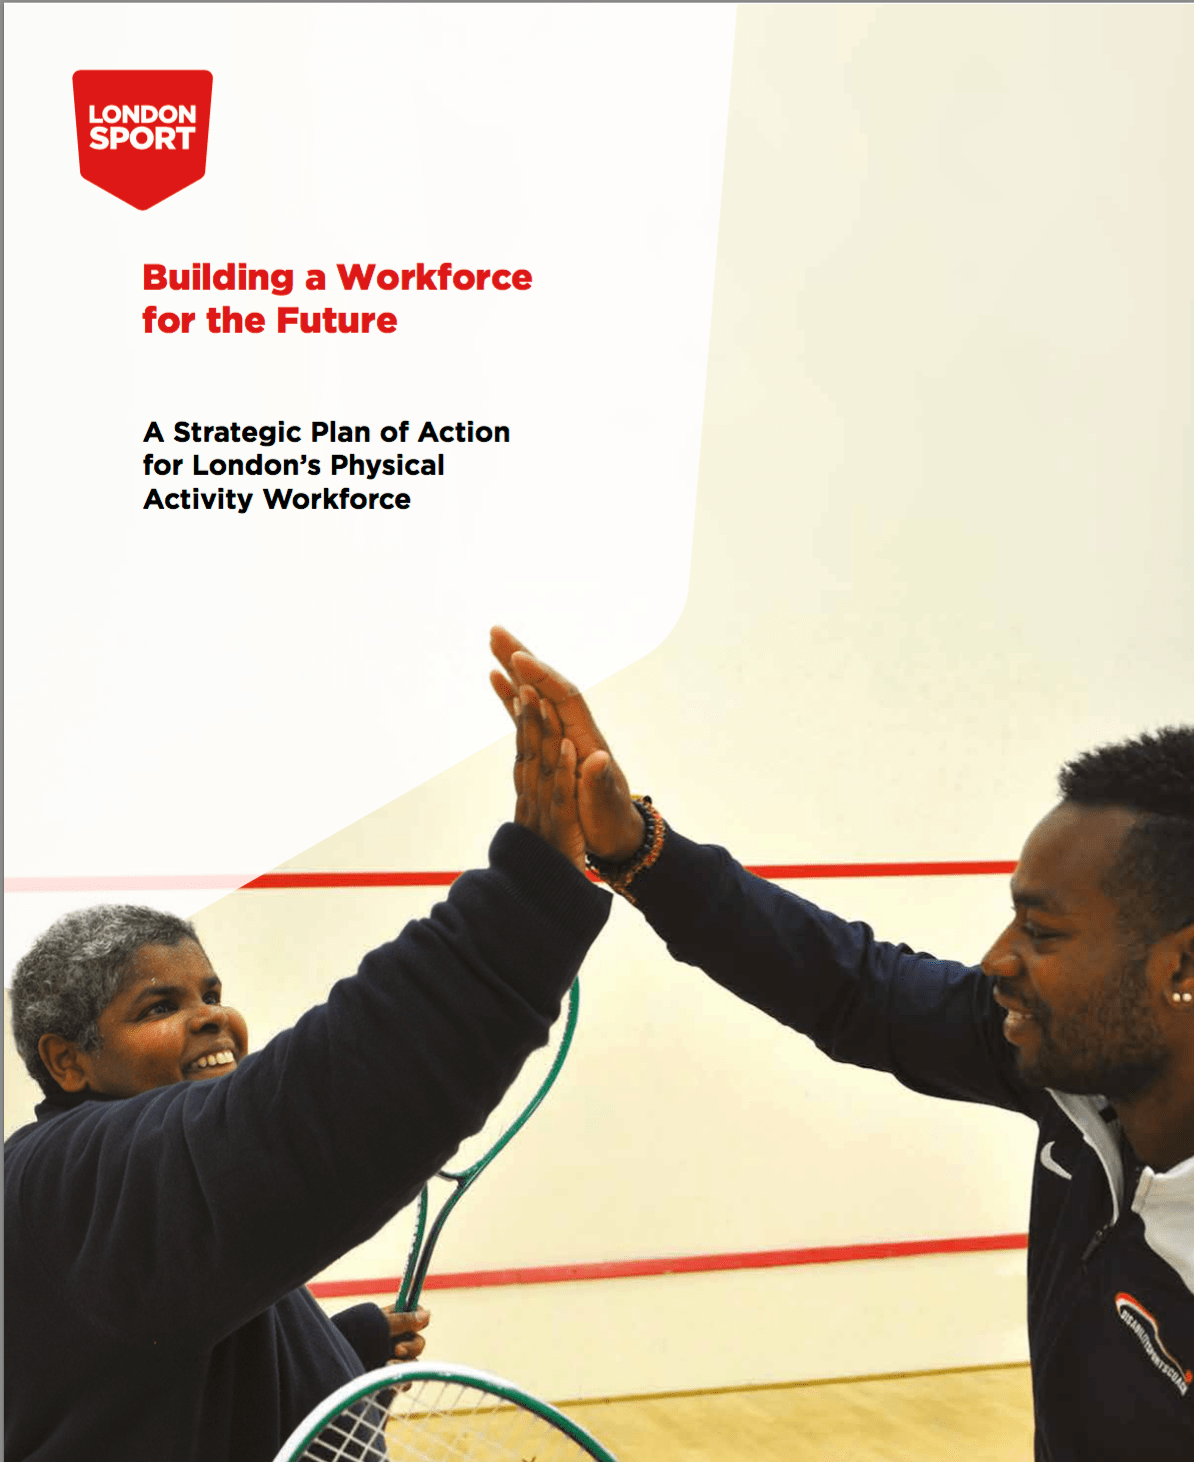 front cover of strategy showing two people high fiving